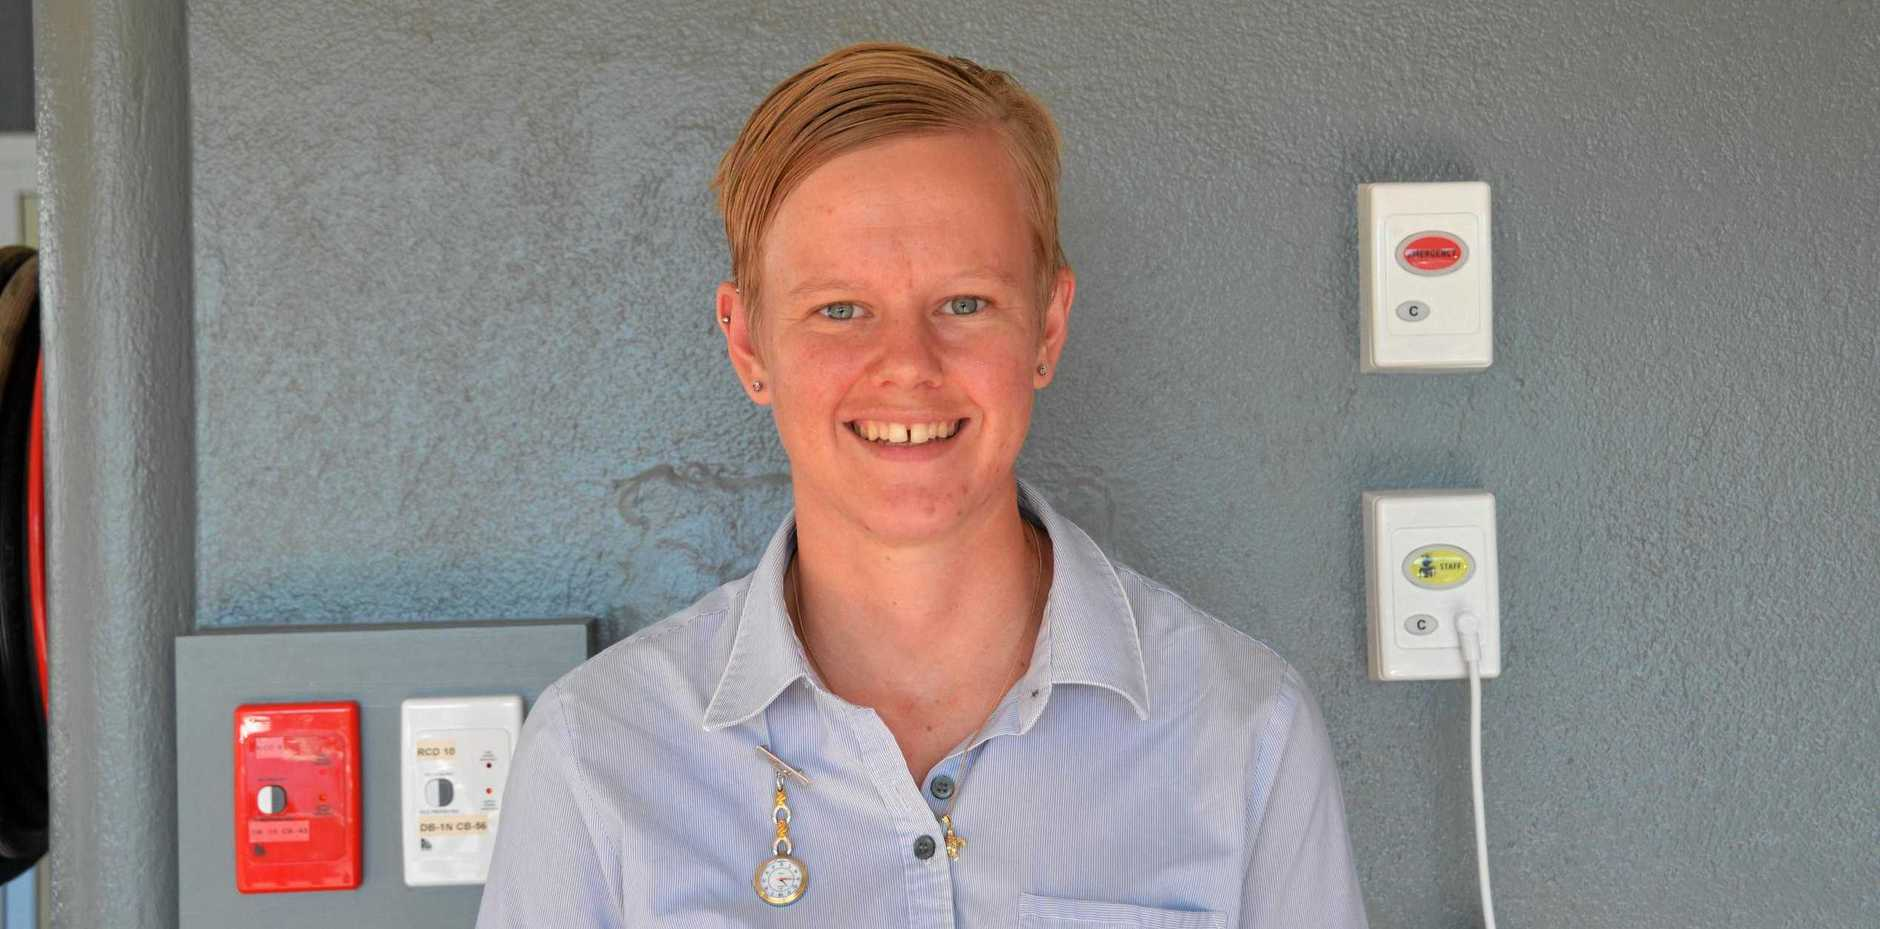 KICKING OFF CAREER: Graduate nurse Ashleigh Hodges is settling into life in Gayndah, where she said she felt warmly welcomed.